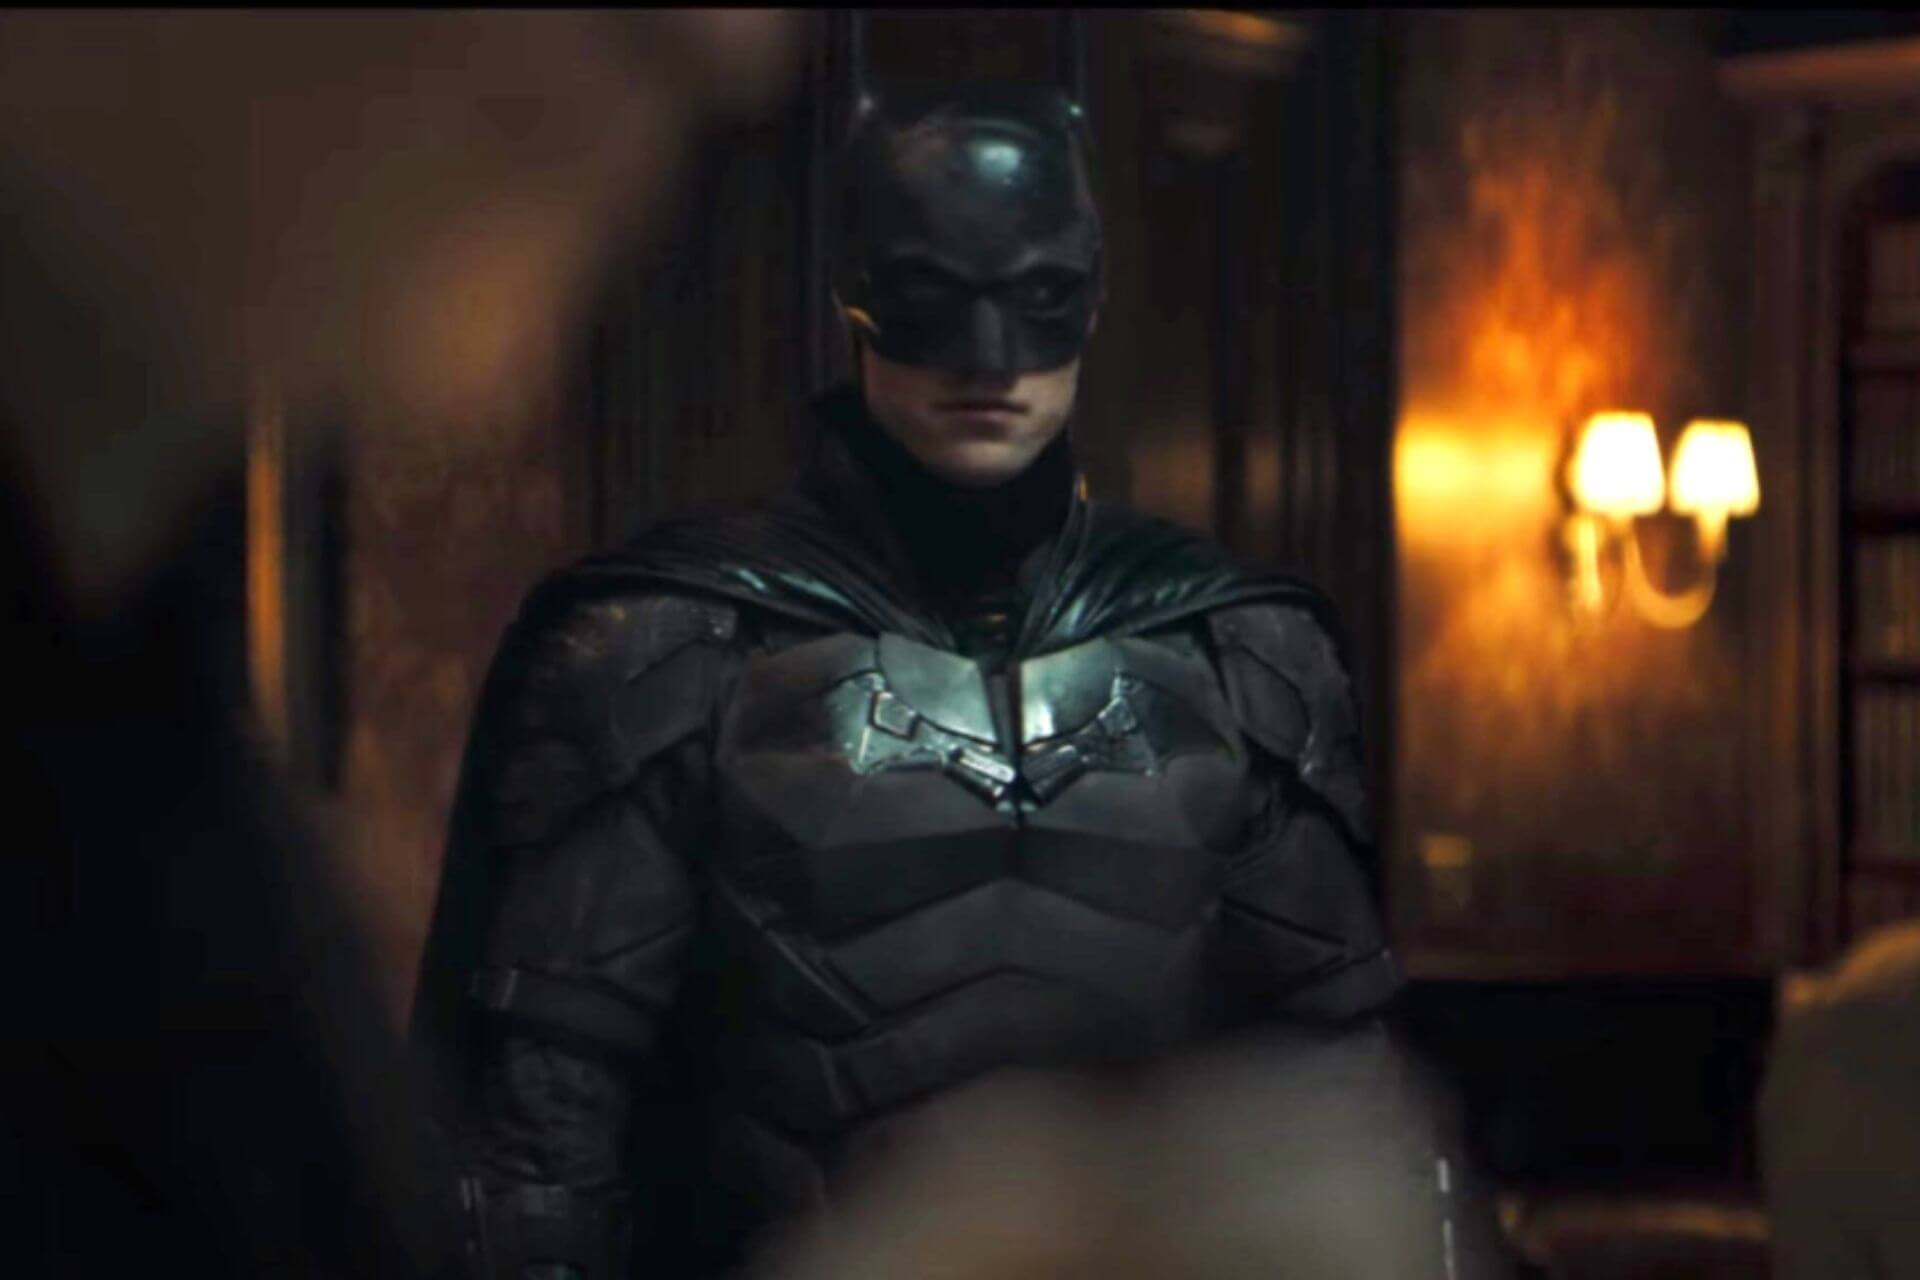 Fans react to first look at Robert Pattinson as Batman| Watch trailer on Sidomex